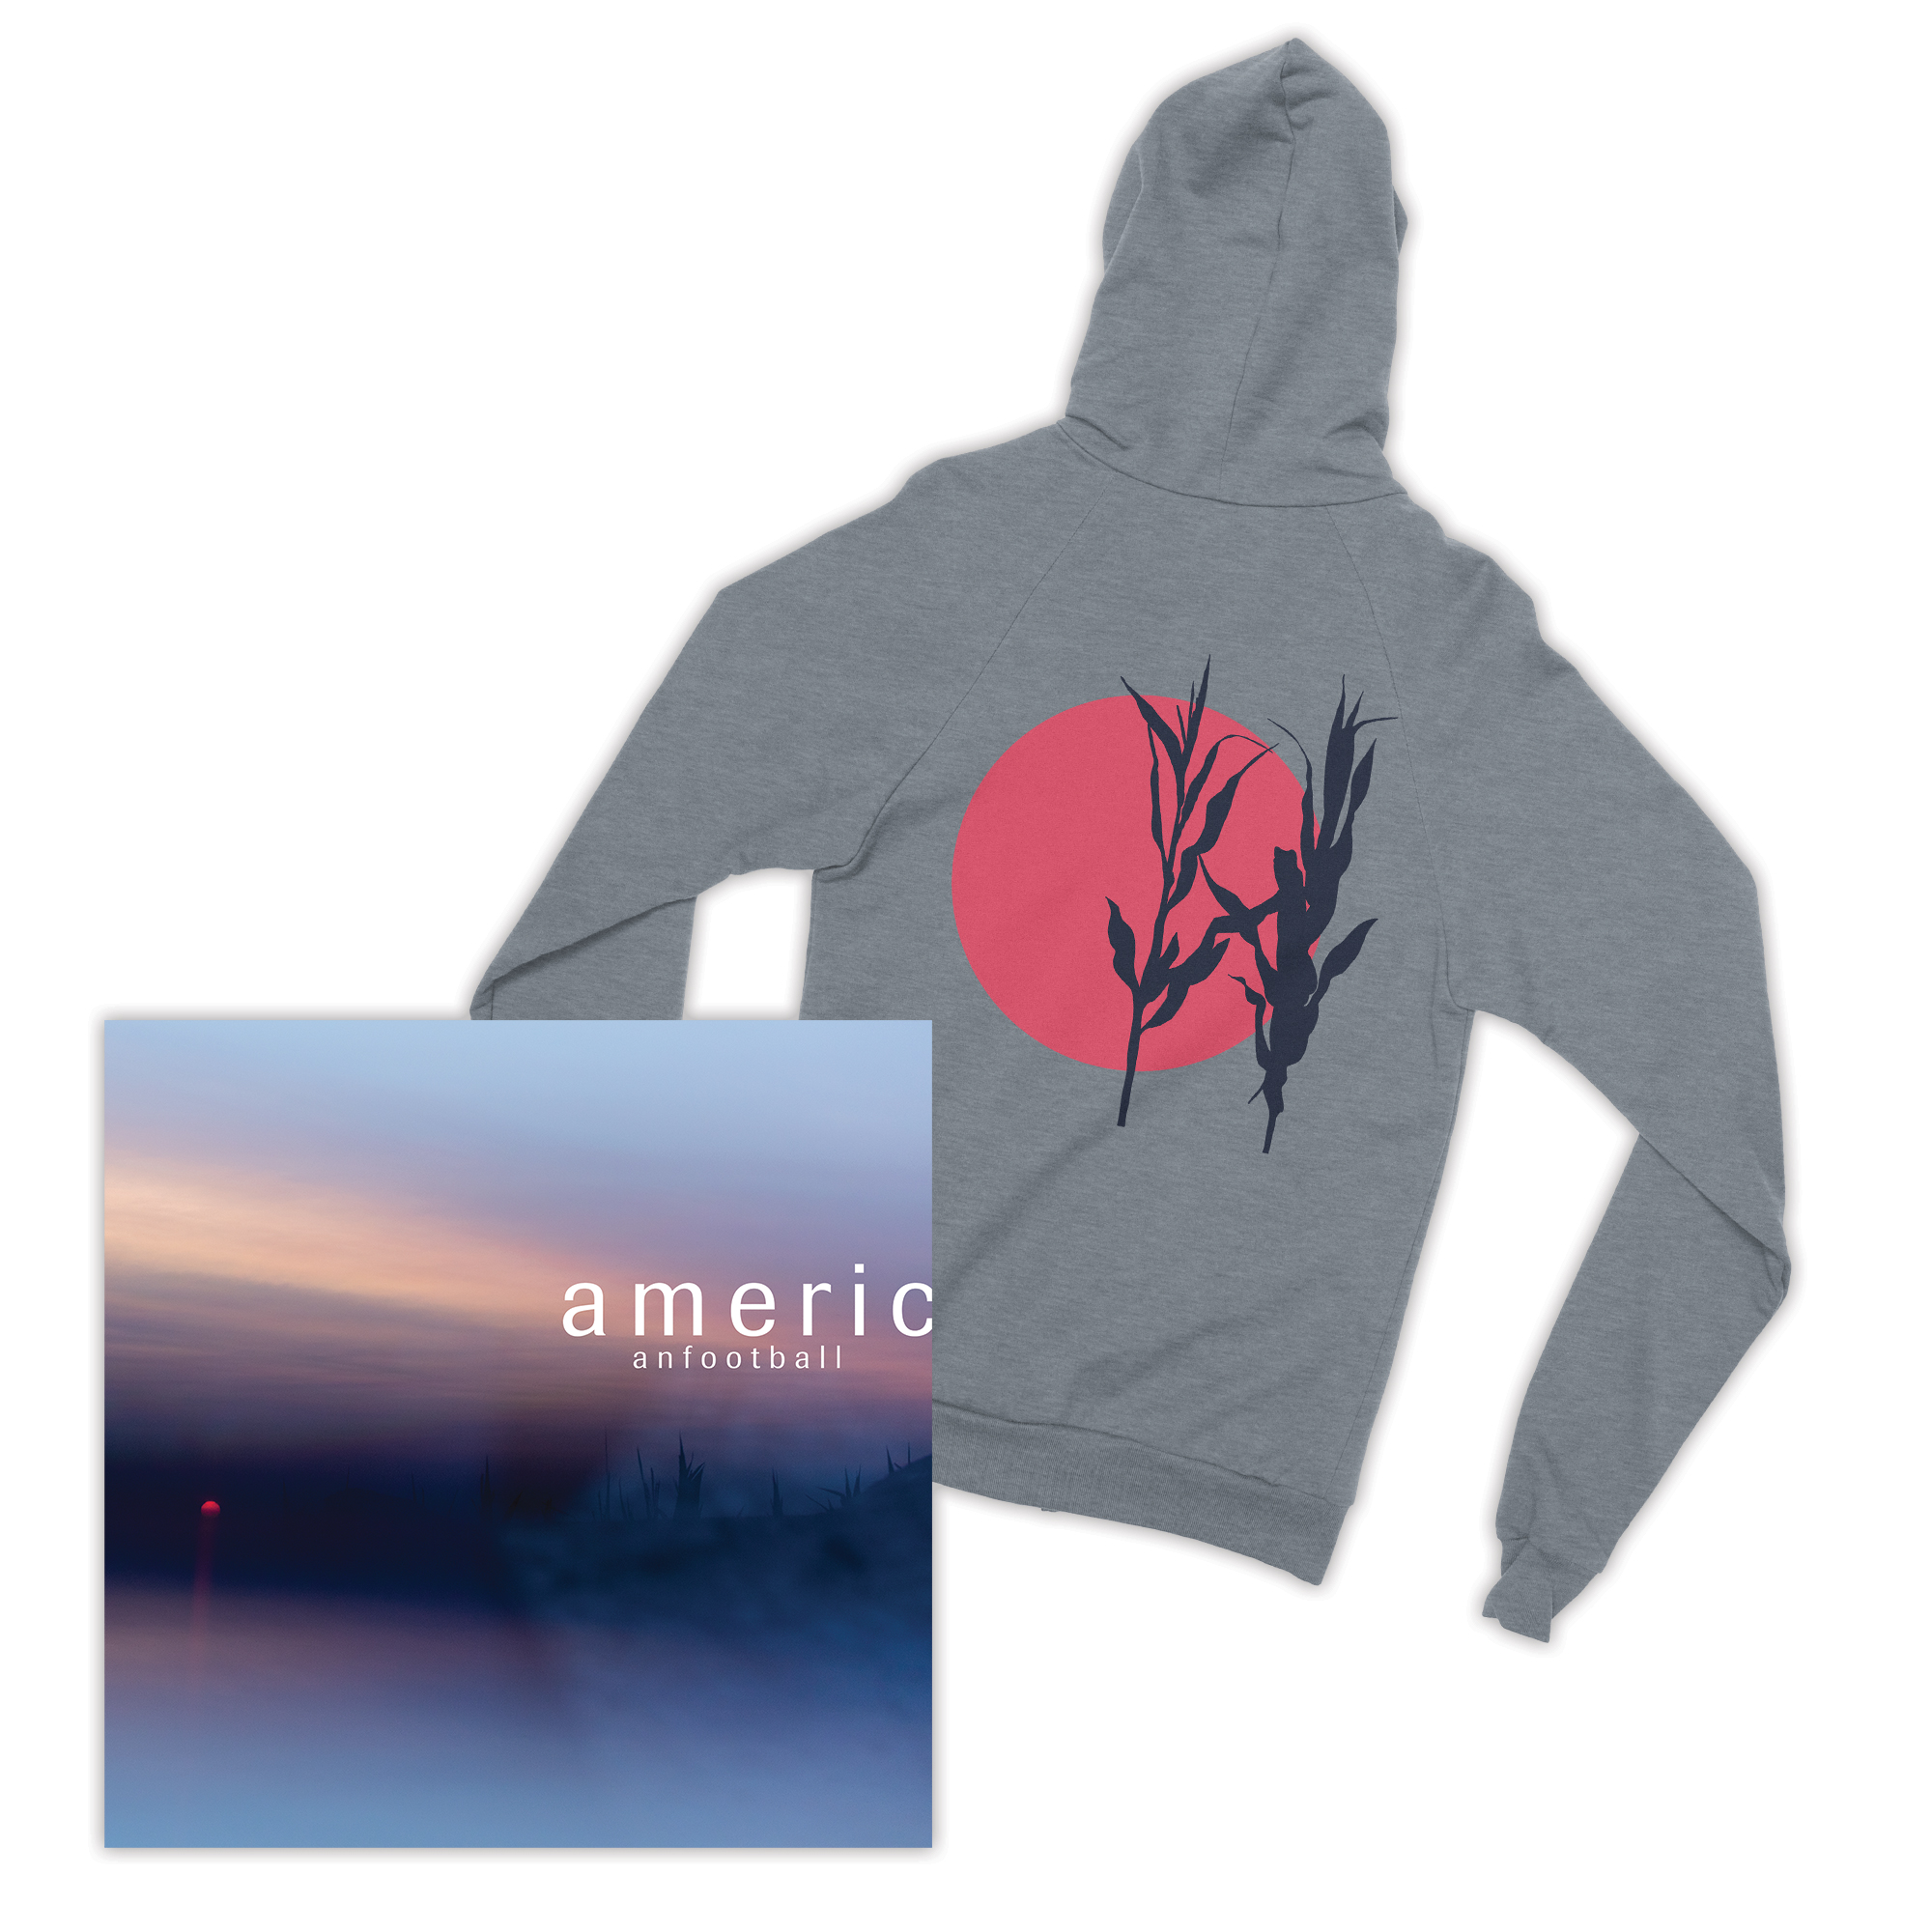 American Football (LP3) + Red Sun Zip-Up Sweatshirt